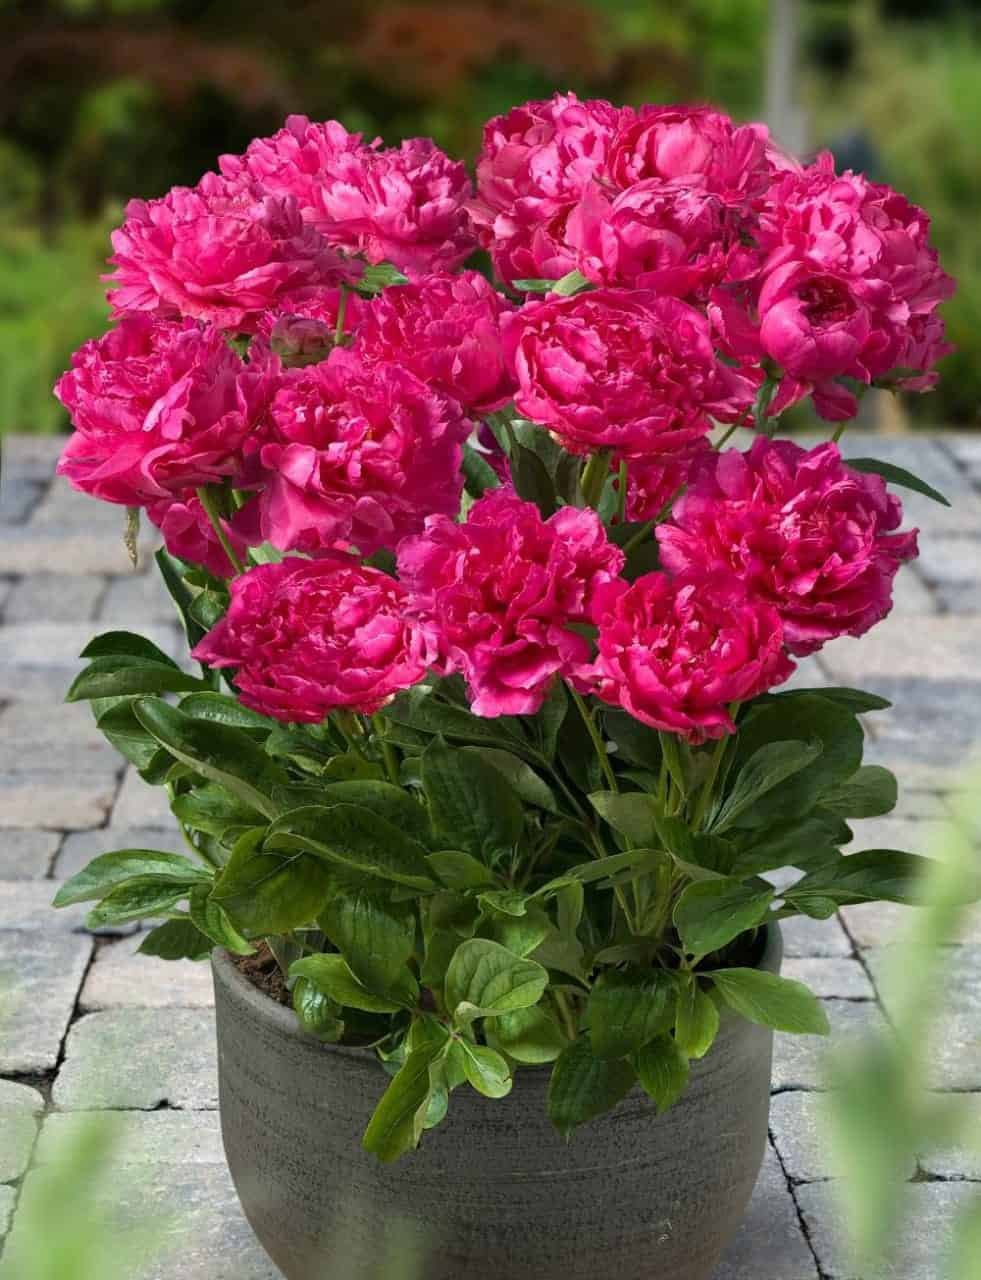 peony plant with bright pink flowers